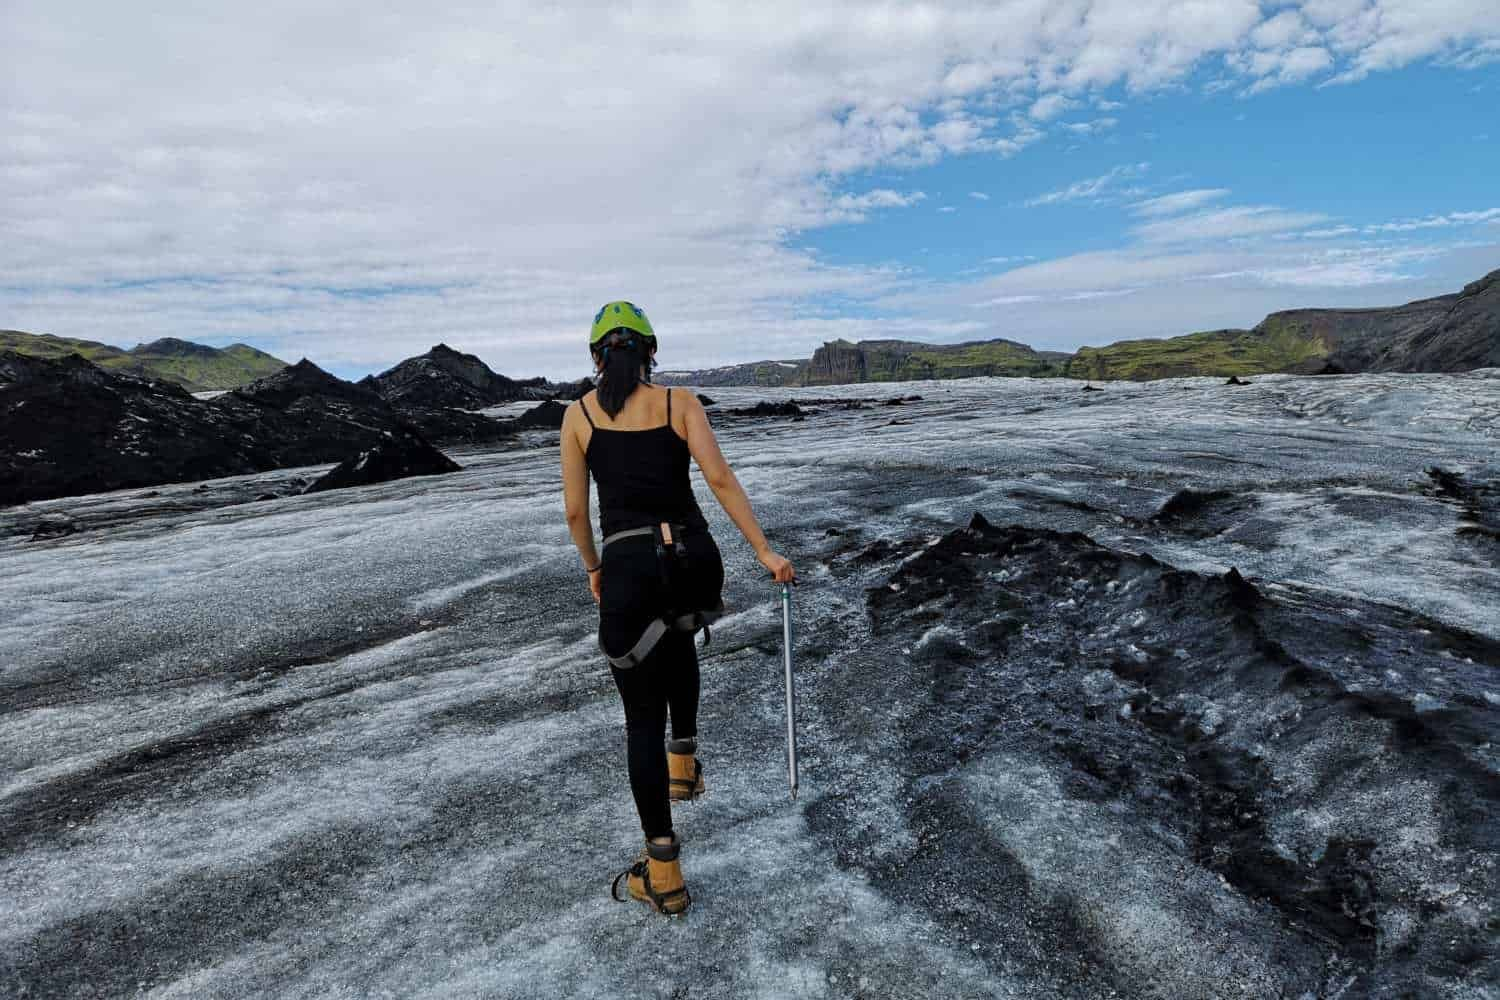 glacier tour in iceland and black sand beach of iceland